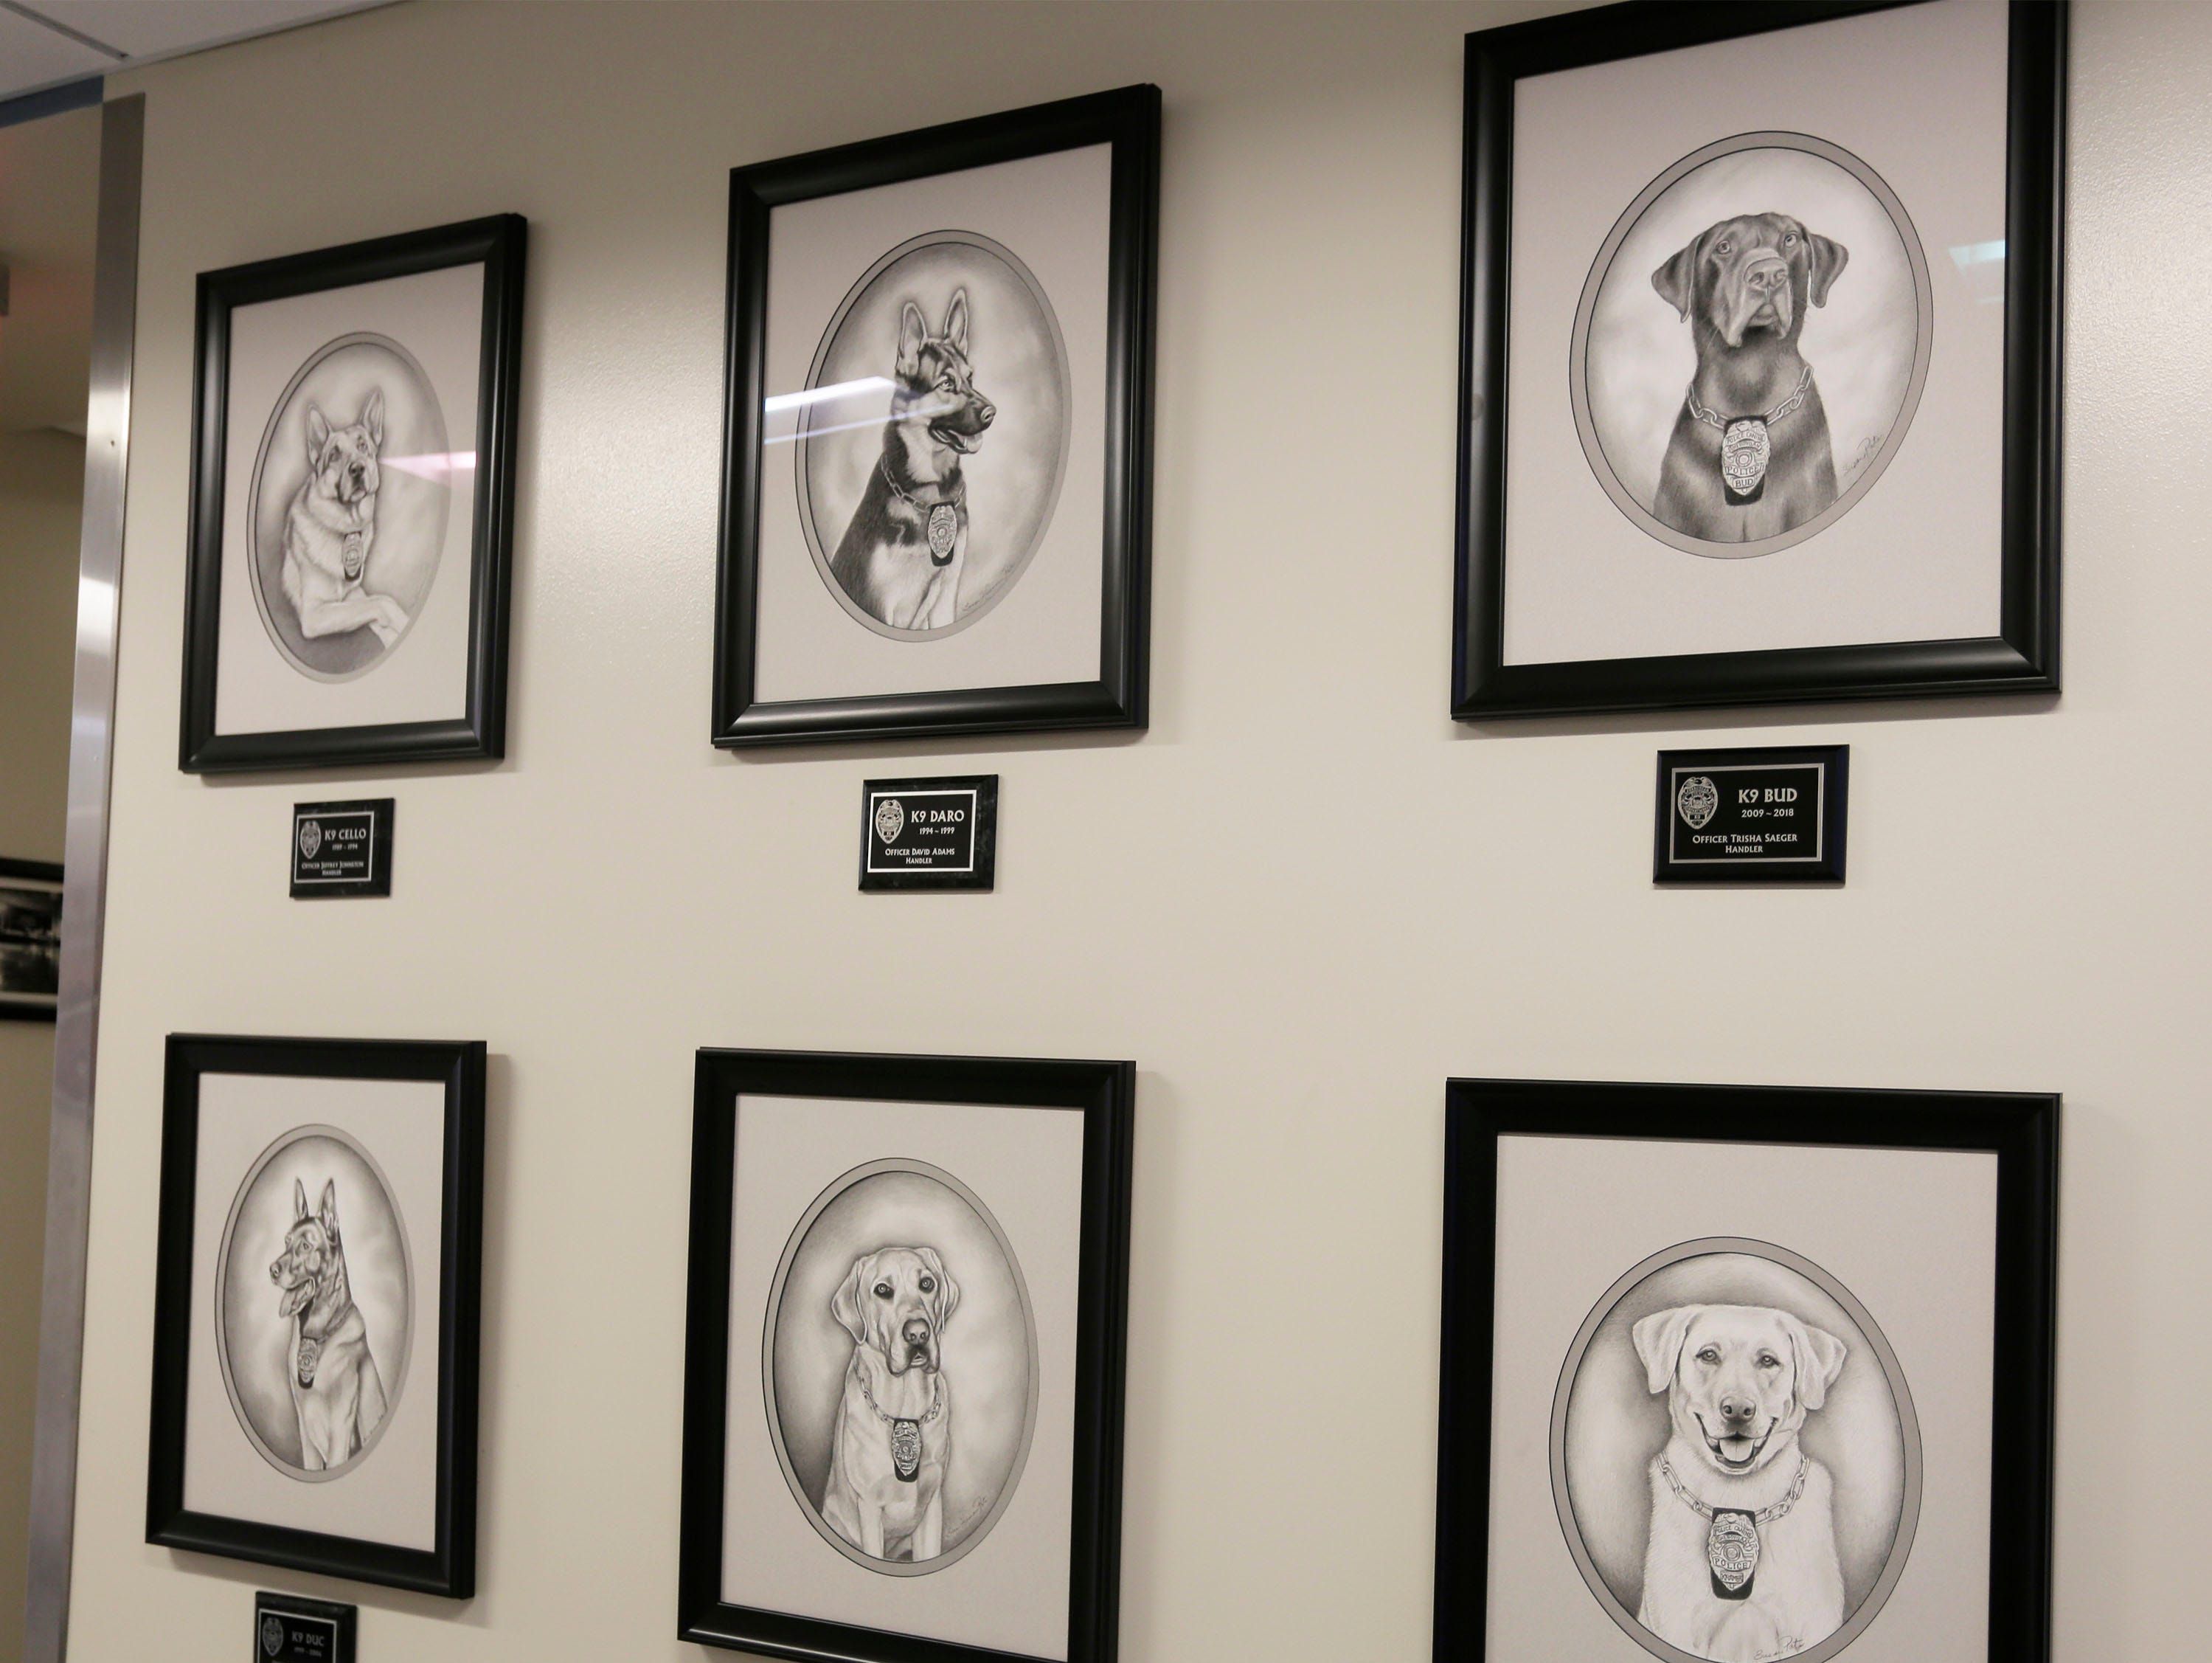 A wall at the Sheboygan Police Department has line portraits of the police dogs that have served through the years in the department's K-9 unit, as seen, Wednesday, March 6, 2019, in Sheboygan, Wis.